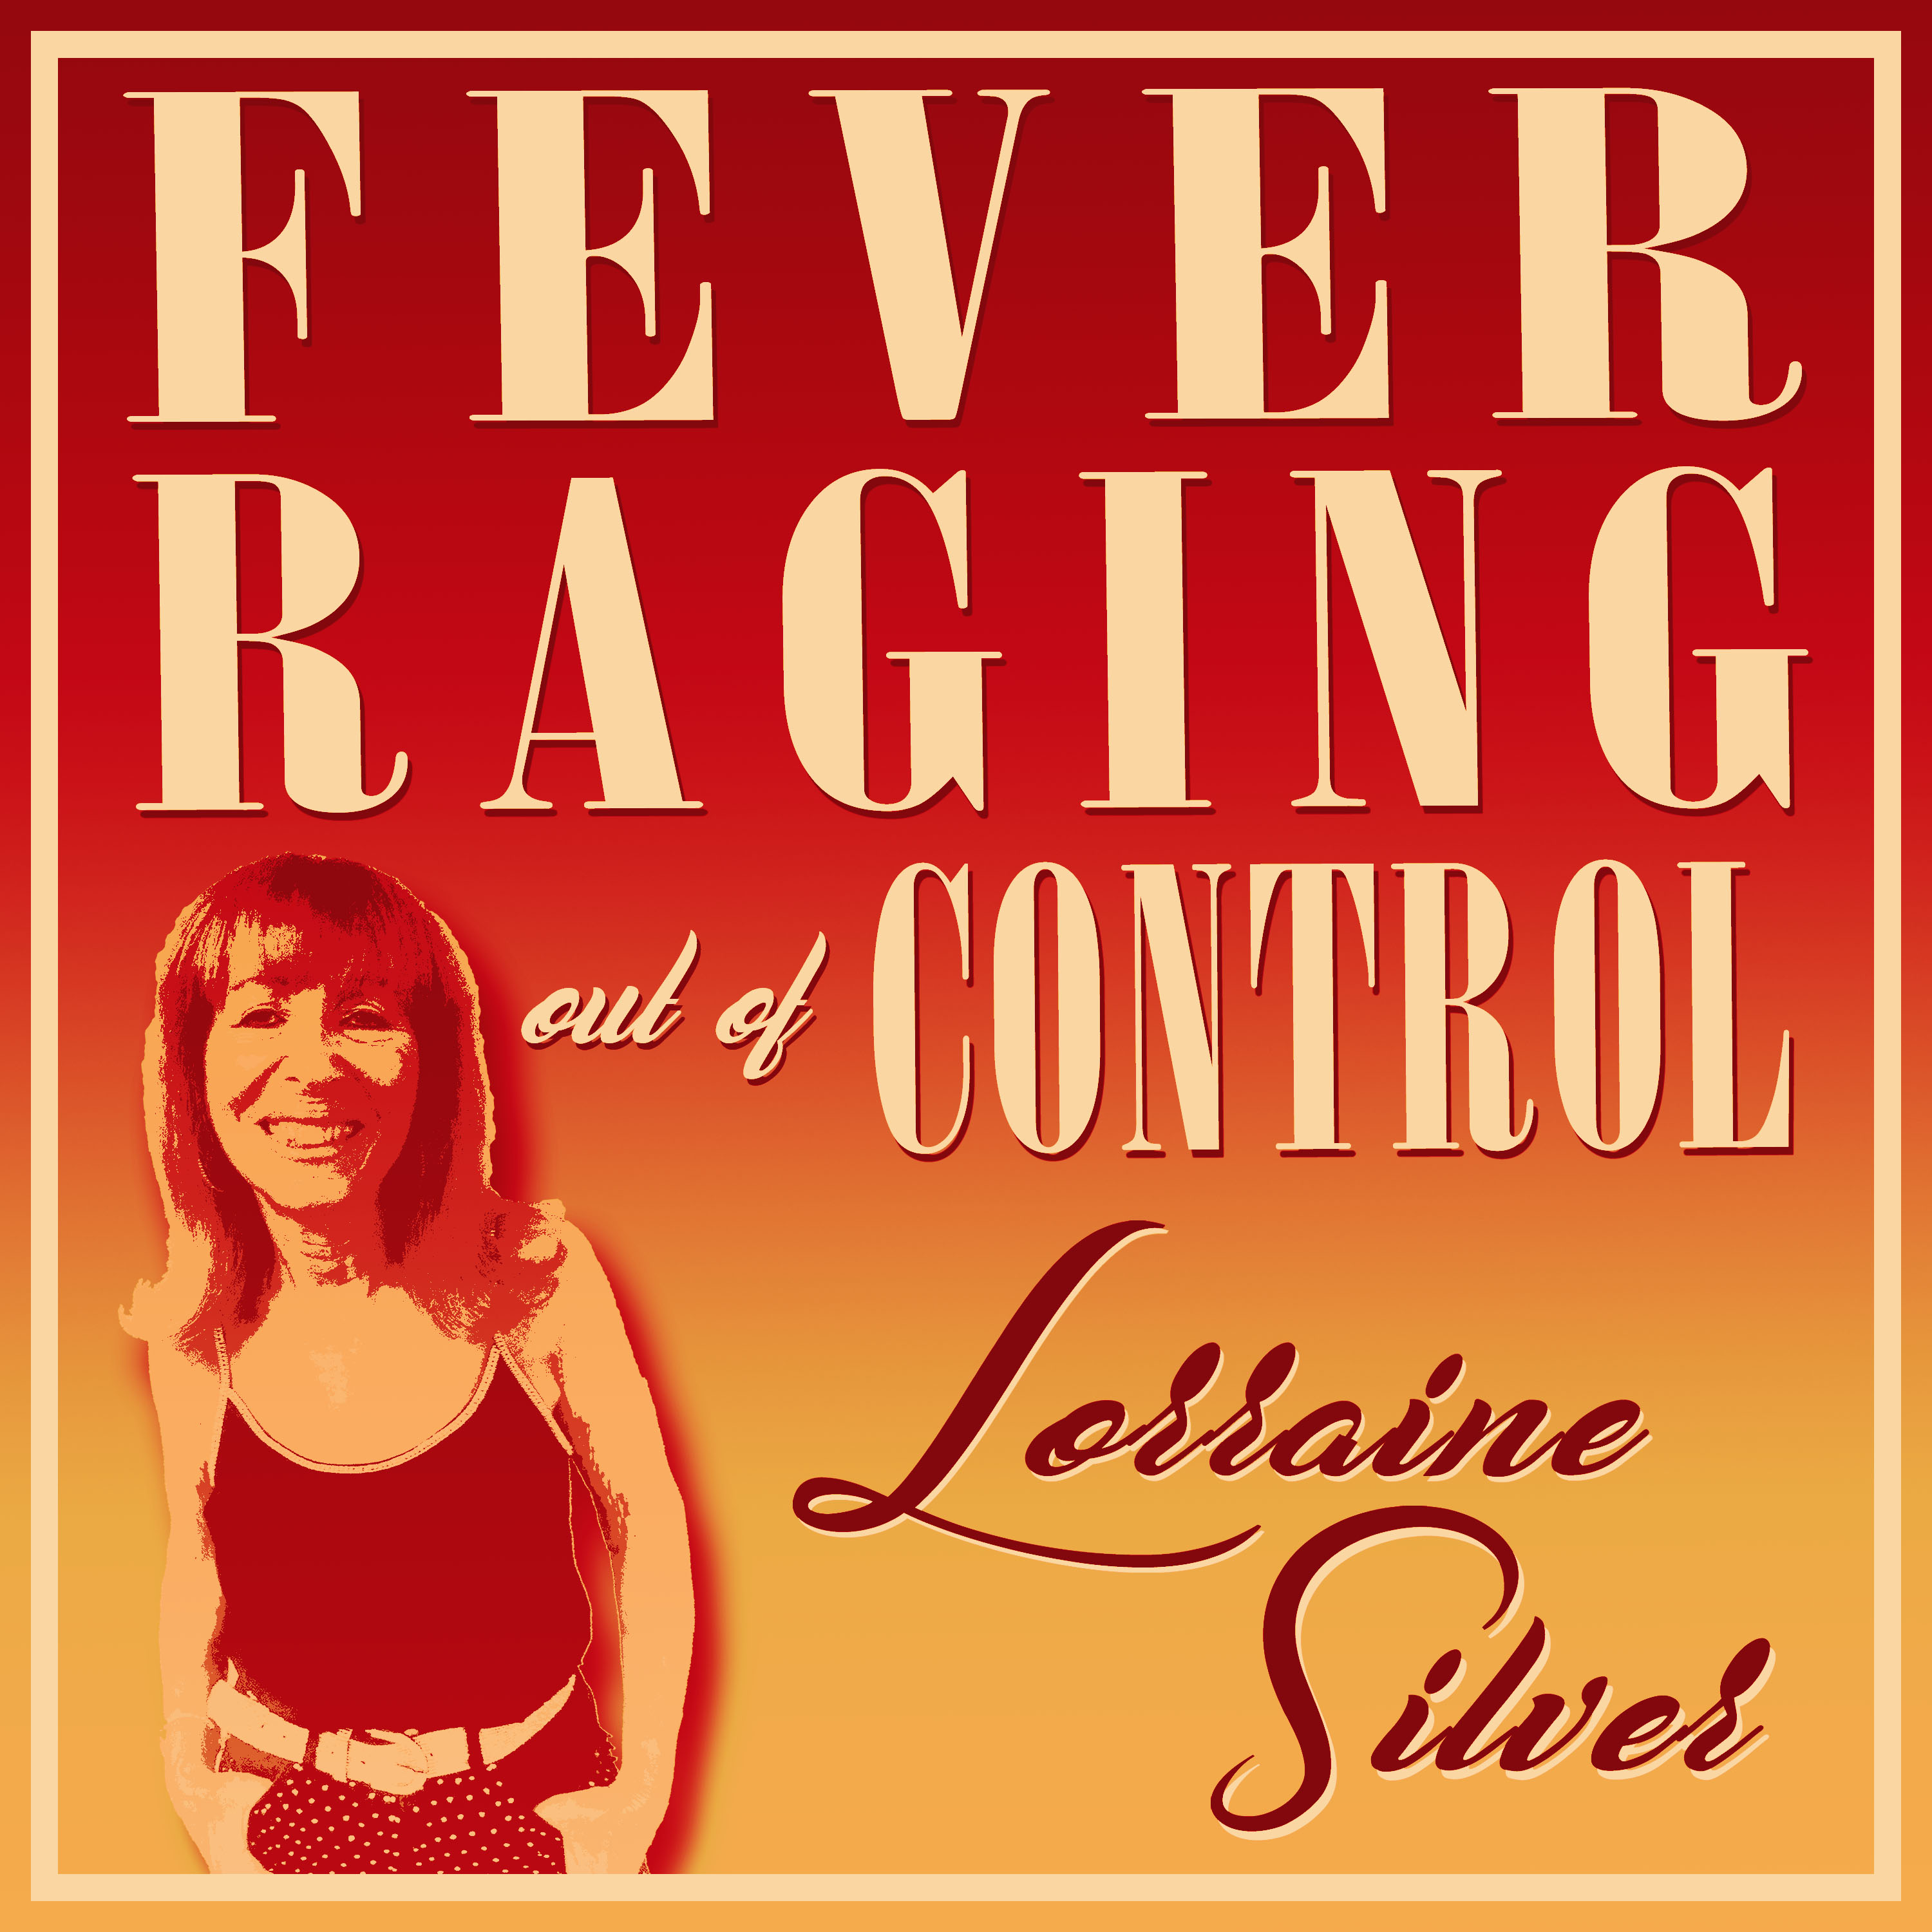 New Lorraine Silver Single Gets Several Radio Plays as well as BEAT Magazine Feature